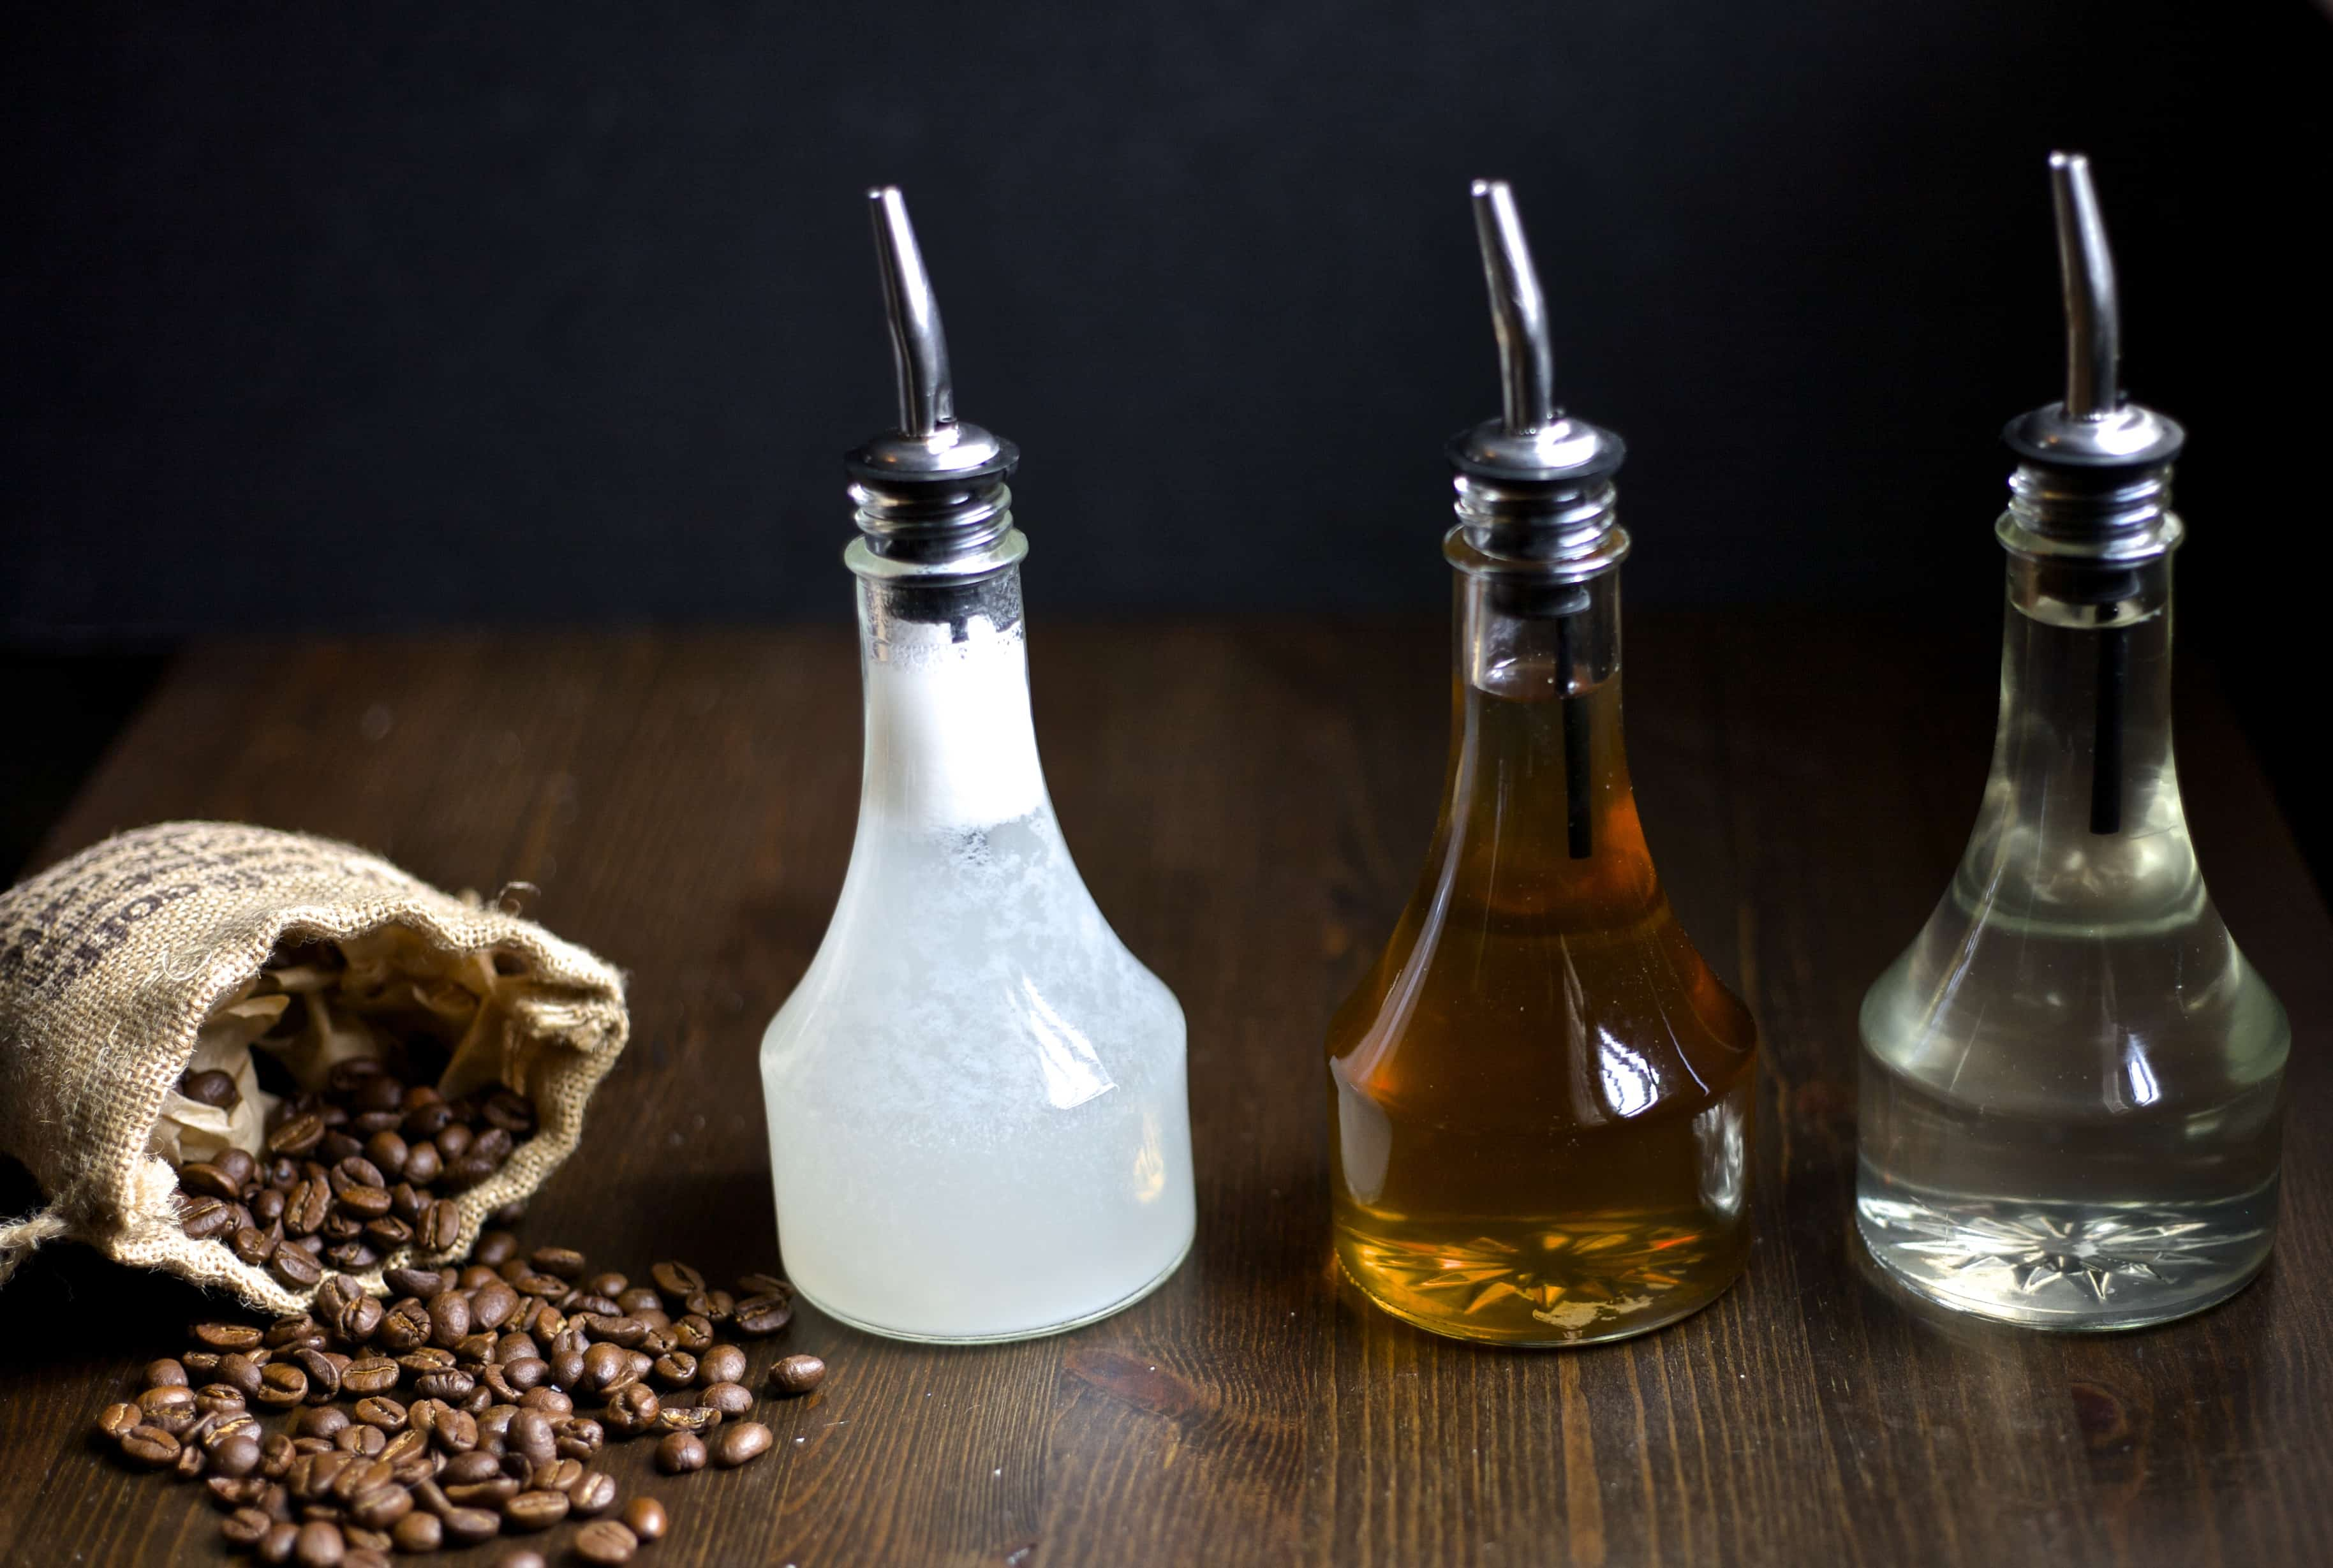 Homemade Flavored Coffee Syrups | The Domestic Dietitian